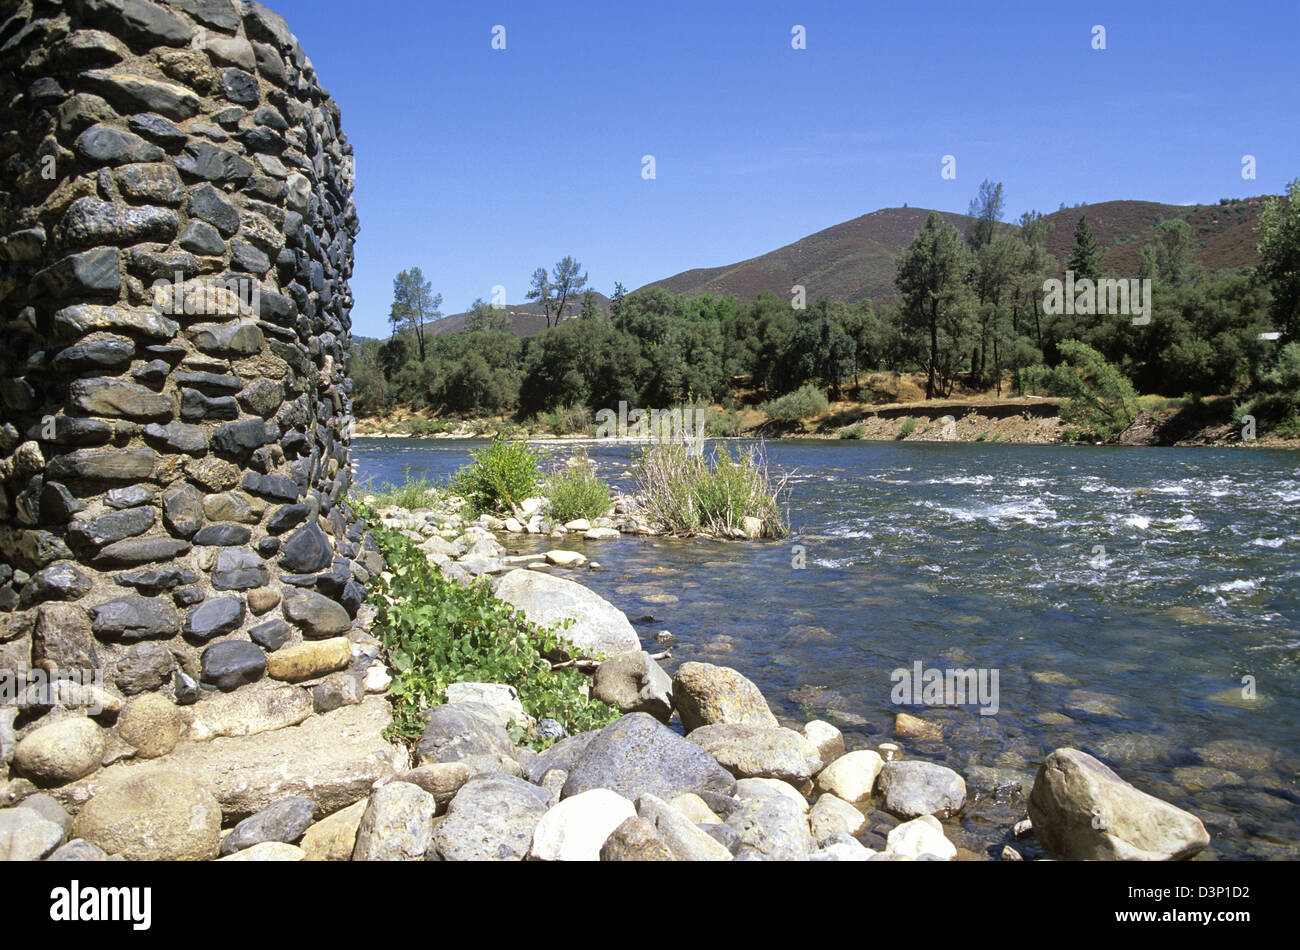 Sutter's Mill site, California Gold Rush, Marshall Gold Discovery State Historic Park, Coloma, California, USA. - Stock Image